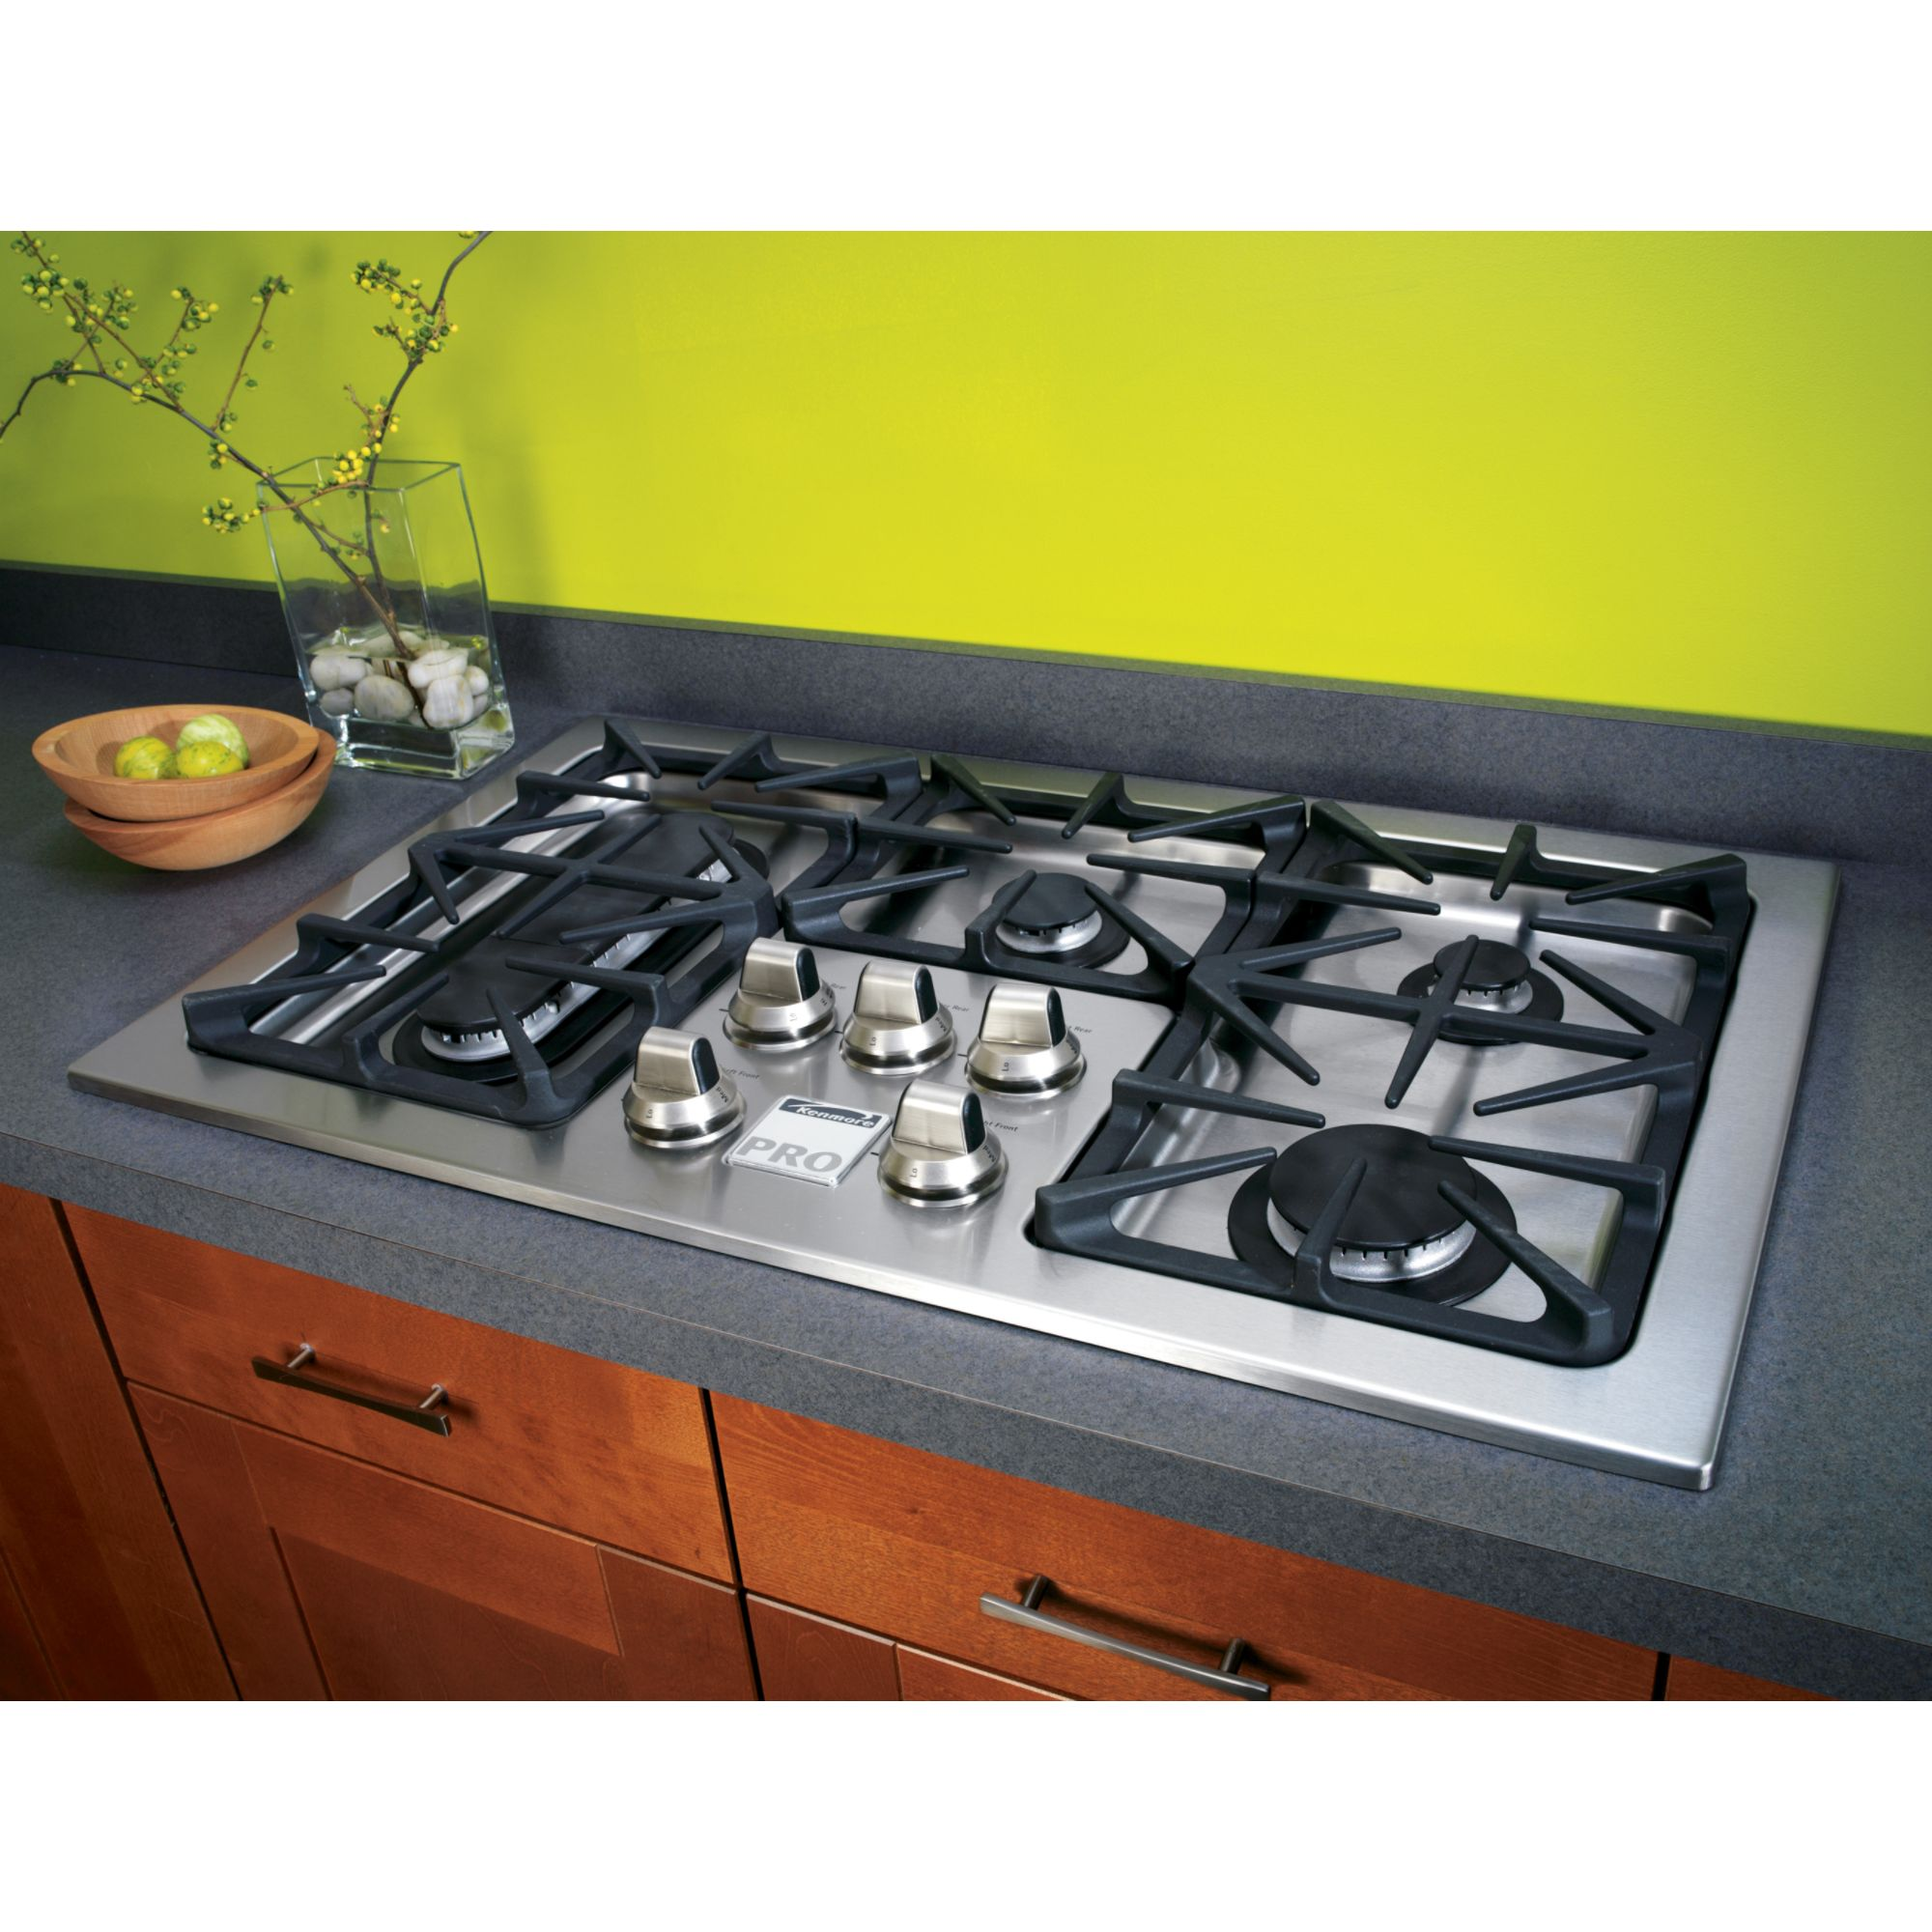 Cooktop Gas Stoves Kenmore Slide In Ceramic Glass Gas Cooktop High Output At